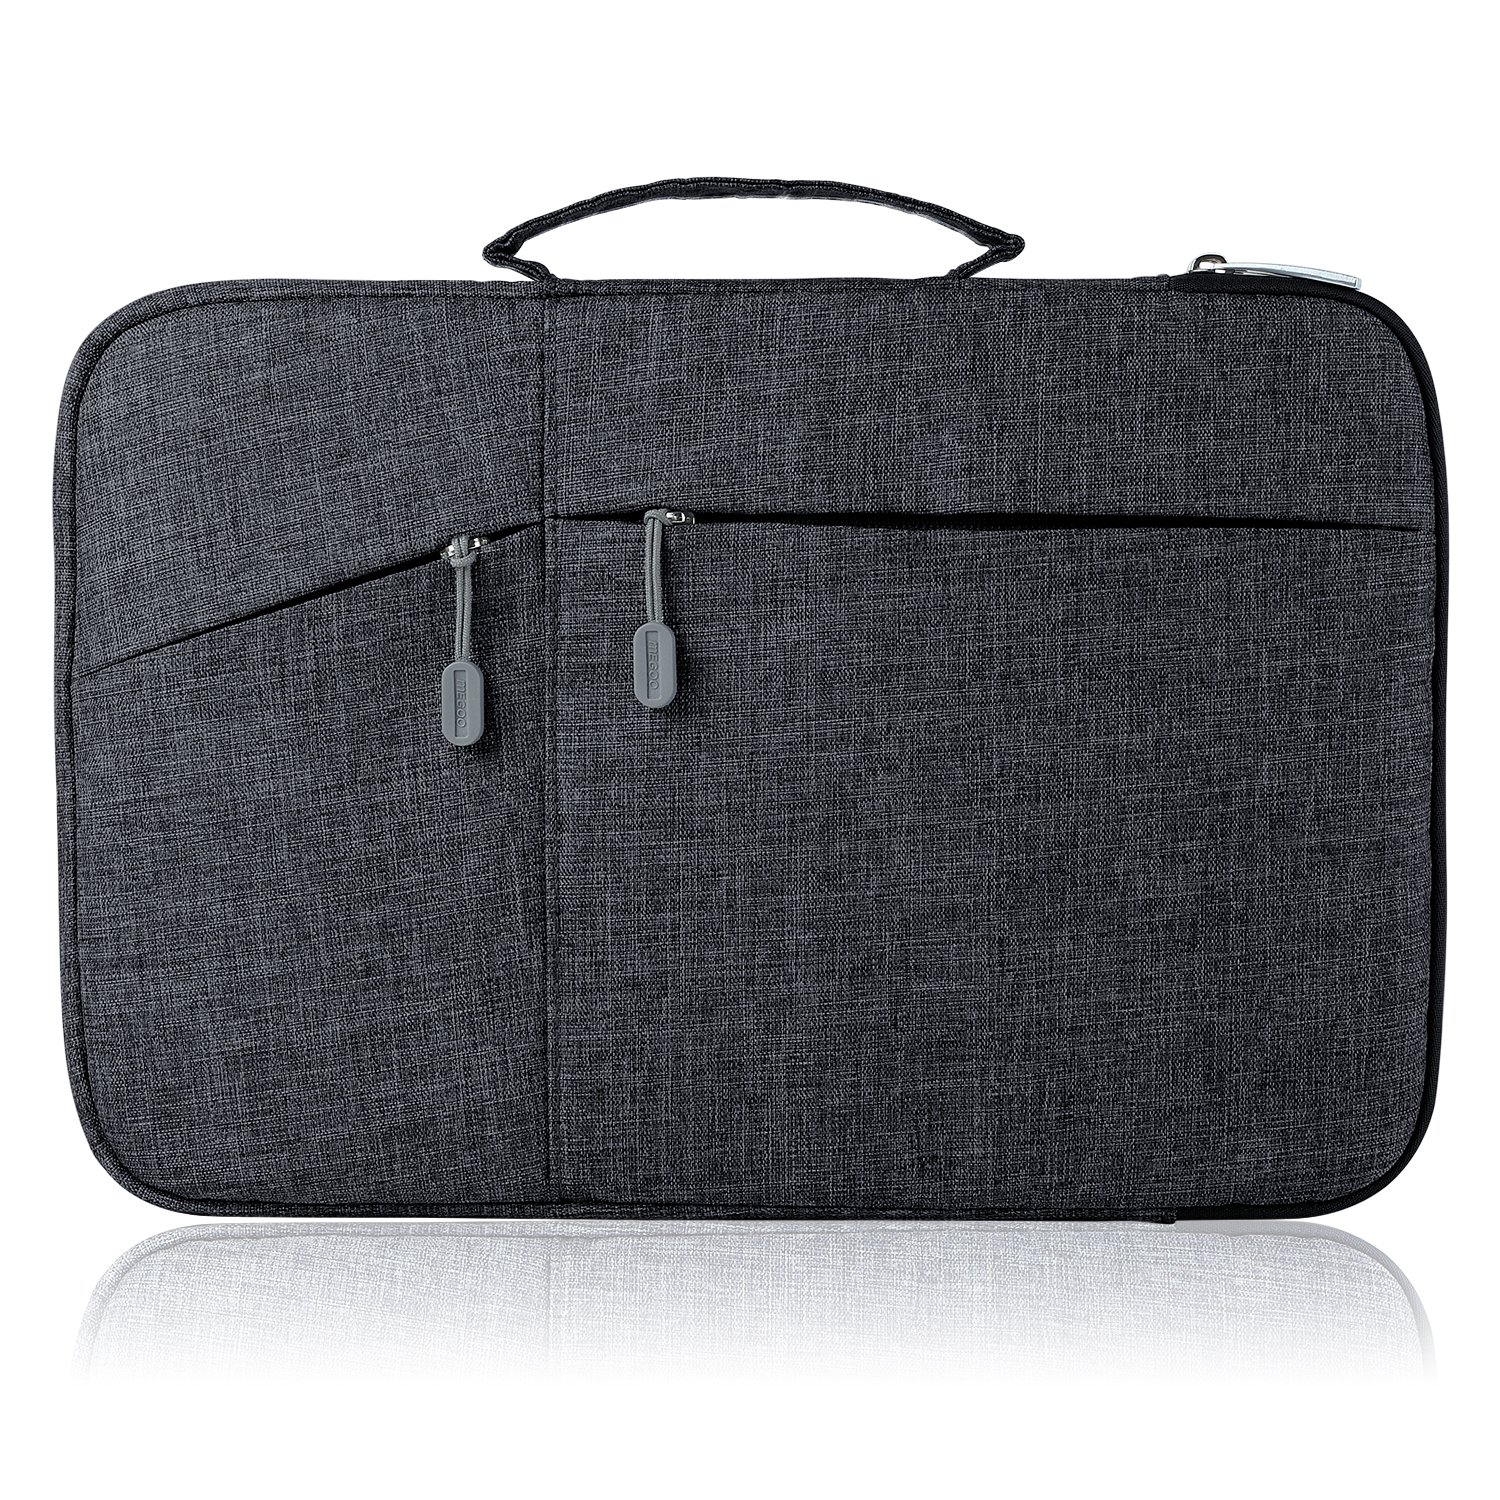 Megoo 12 Inch Sleeve Case for Microsoft New Surface Pro 5/4/3 12.3'', 11'' 12'' Macbook/Dell/Chromebook/Samsung Galaxy Book Tablet Laptop Slim Water Resistant Carrying Case with Handle and Pocket (Black)